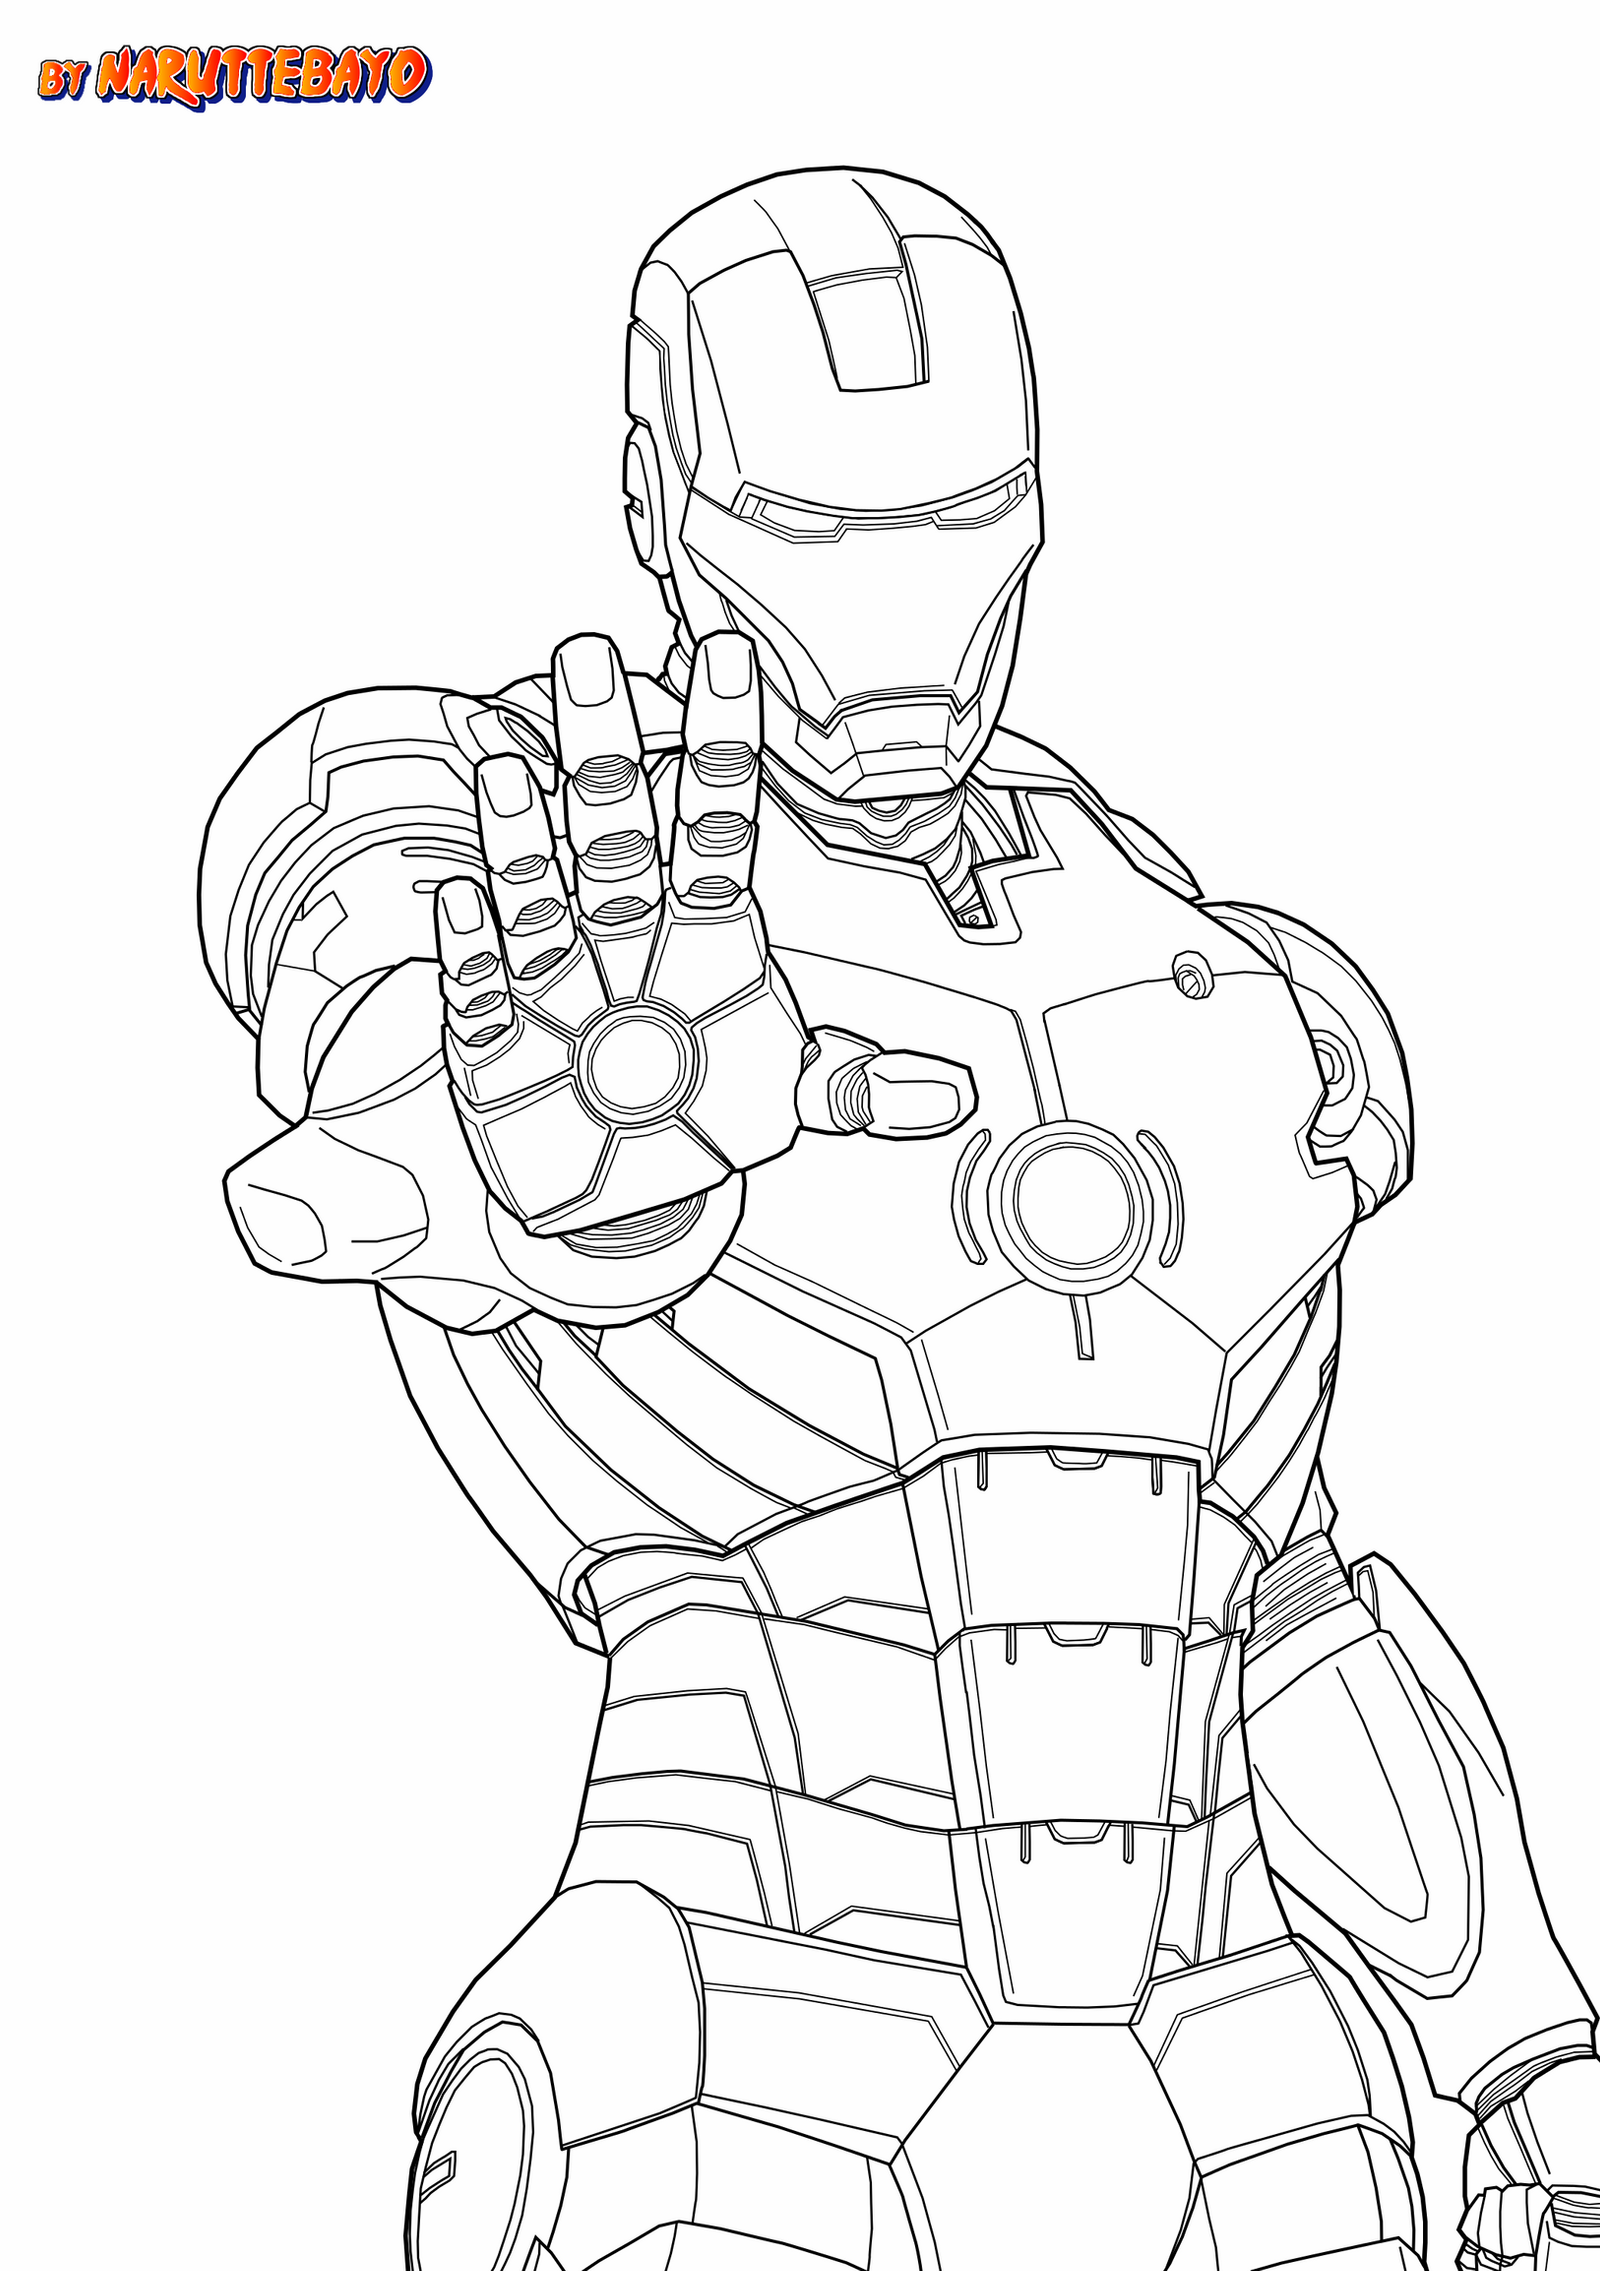 iron man outline drawing iron man outline drawing at paintingvalleycom explore iron outline man drawing